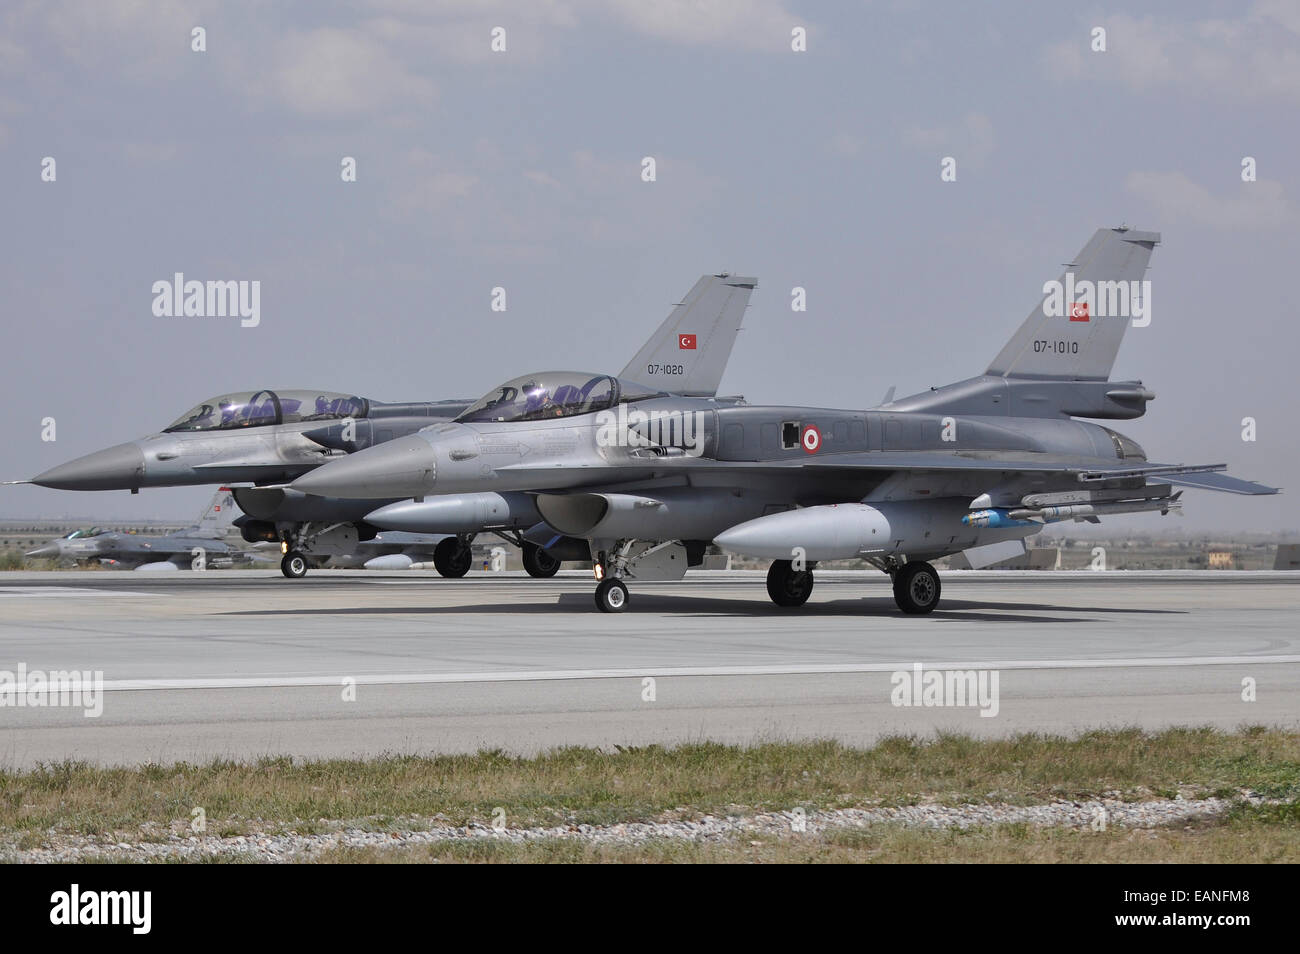 Two Turkish Air Force F-16C/D Block 52+ aircraft ready for take-off at Konya Air Base, Turkey, during Exercise Anatolian - Stock Image